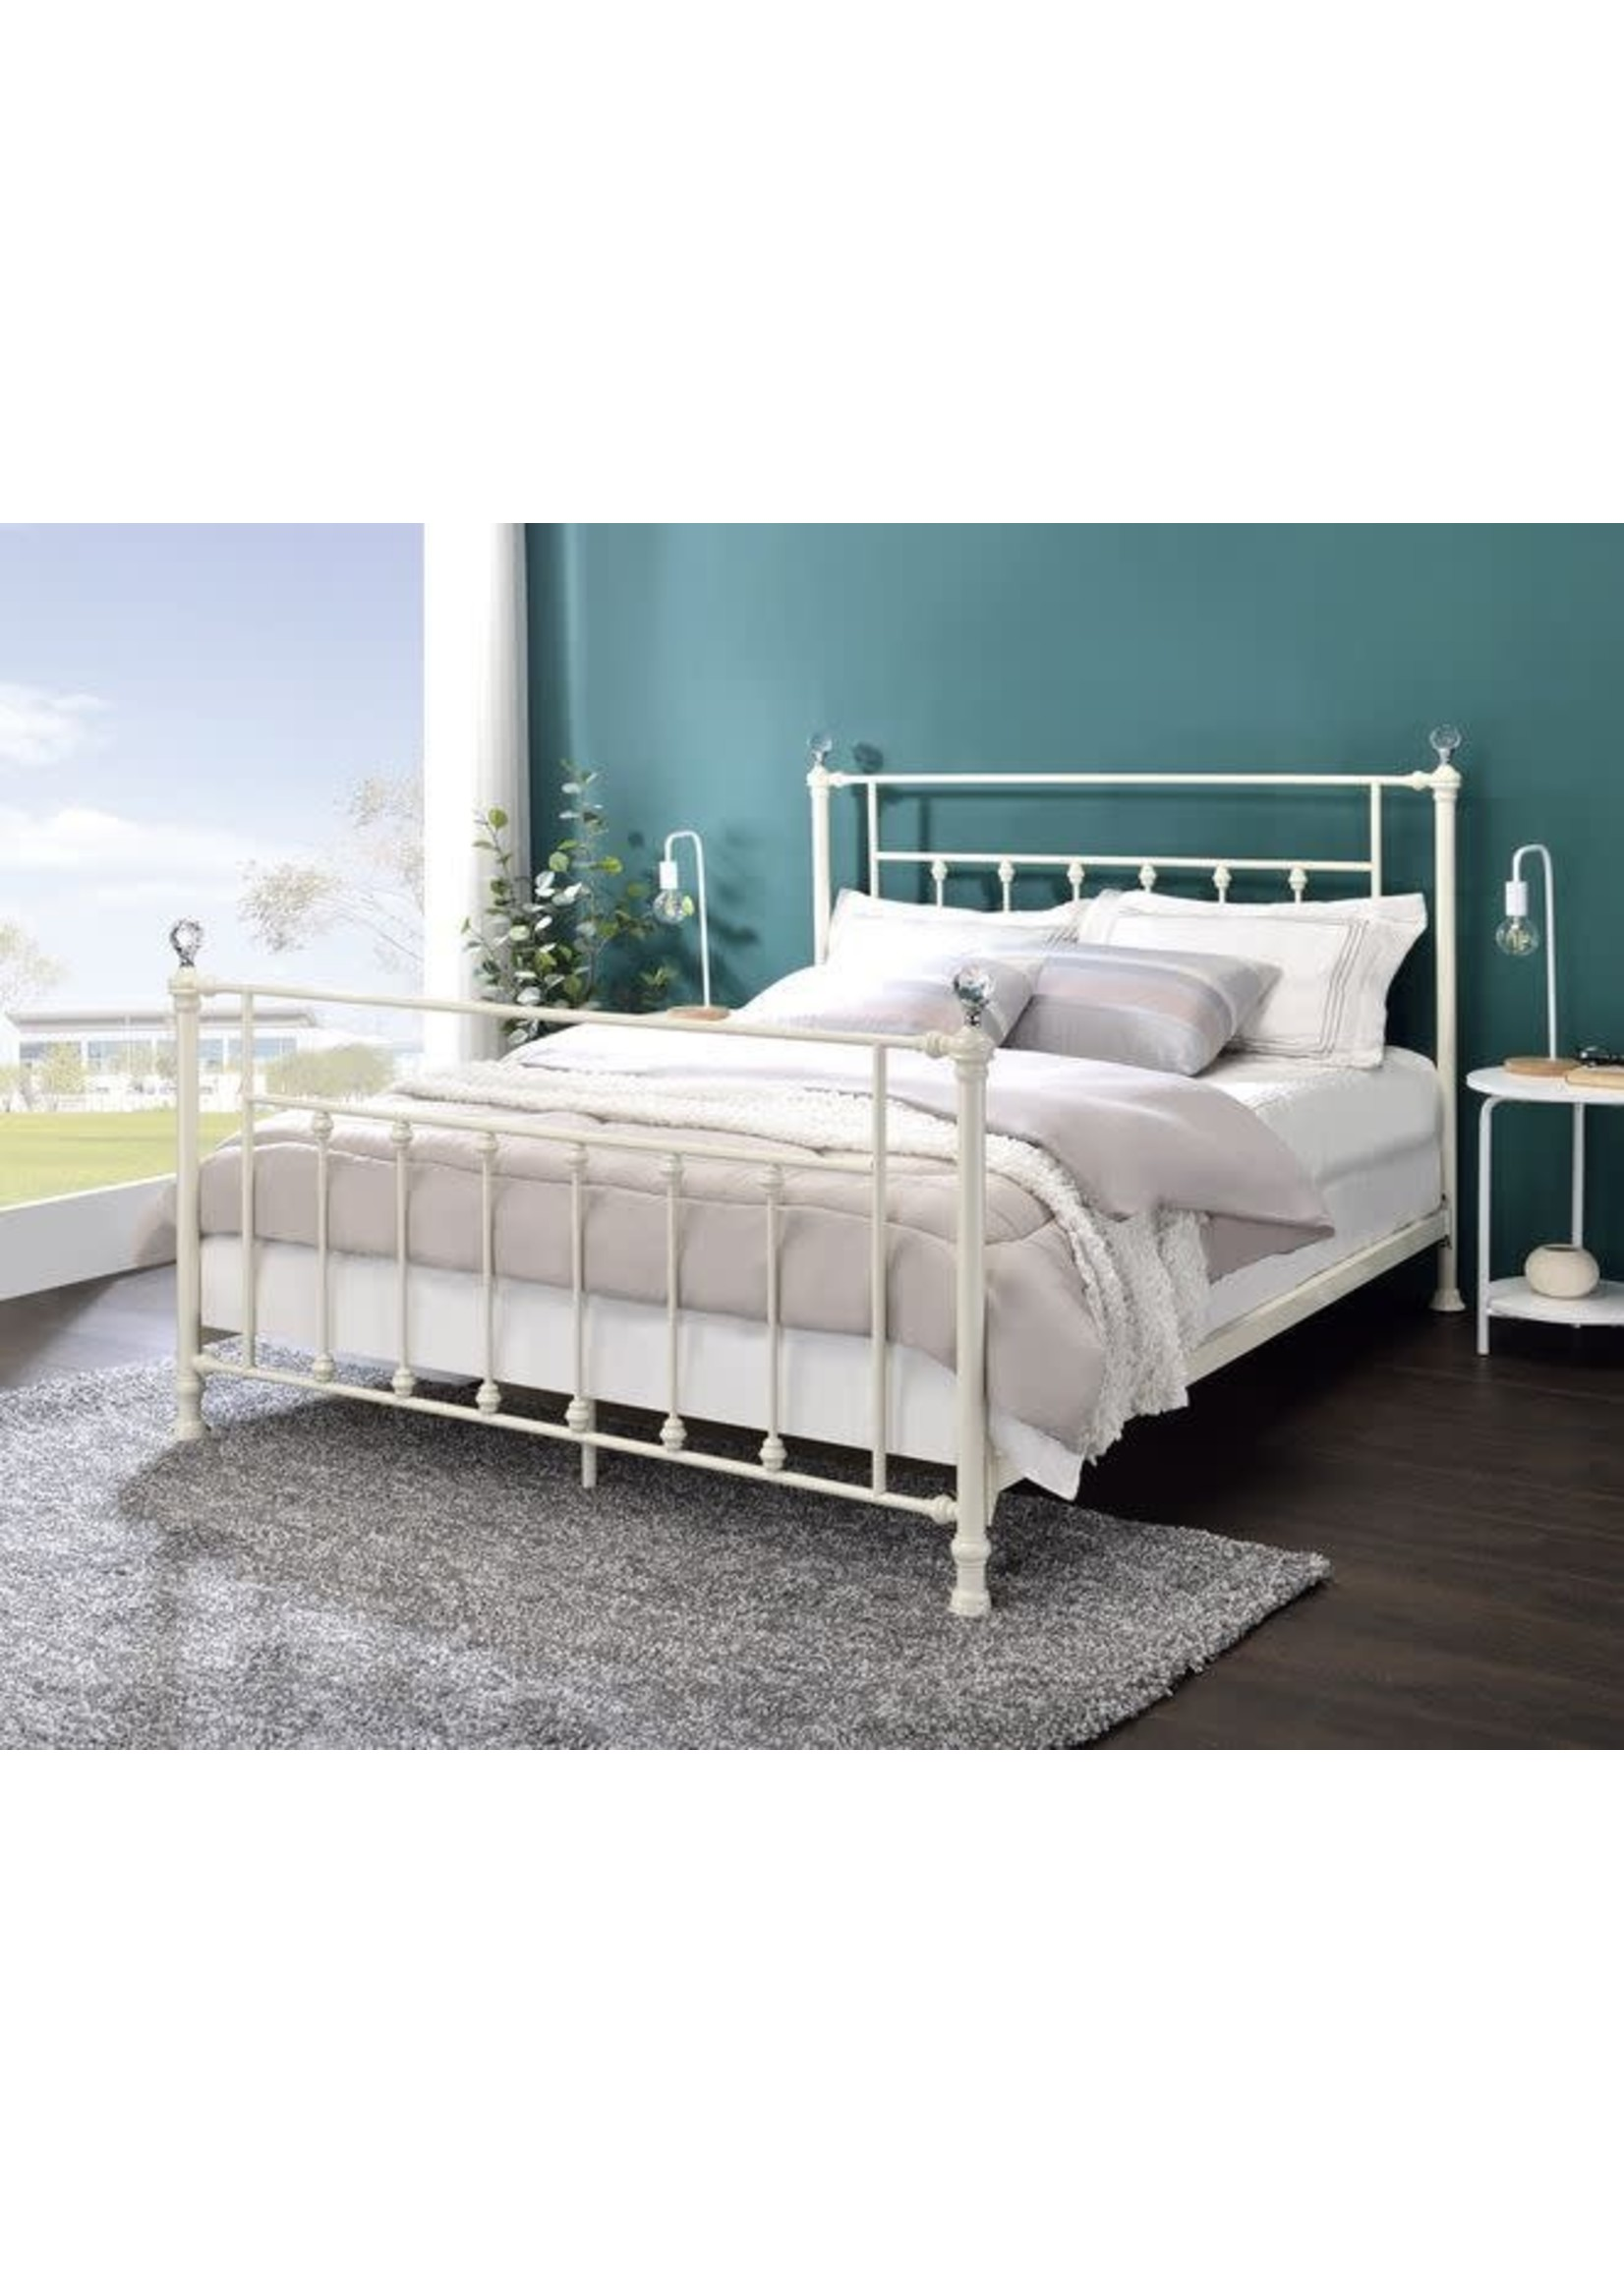 ACME BD00134Q QUEEN BED COMET WHITE FINISH